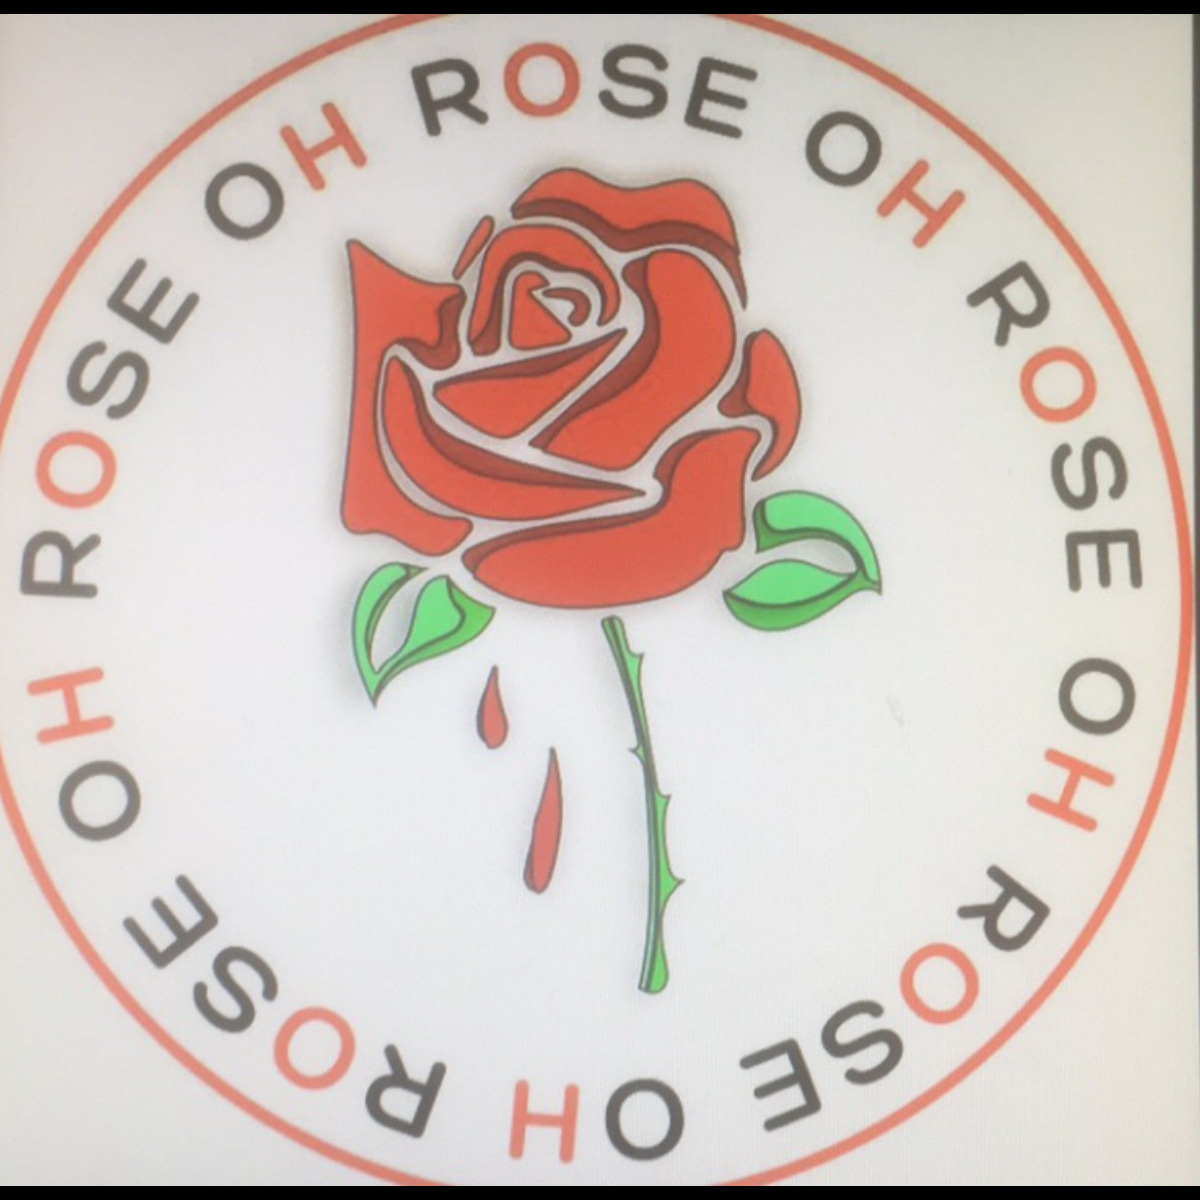 OH ROSE GARMENT GARDEN Profile Picture